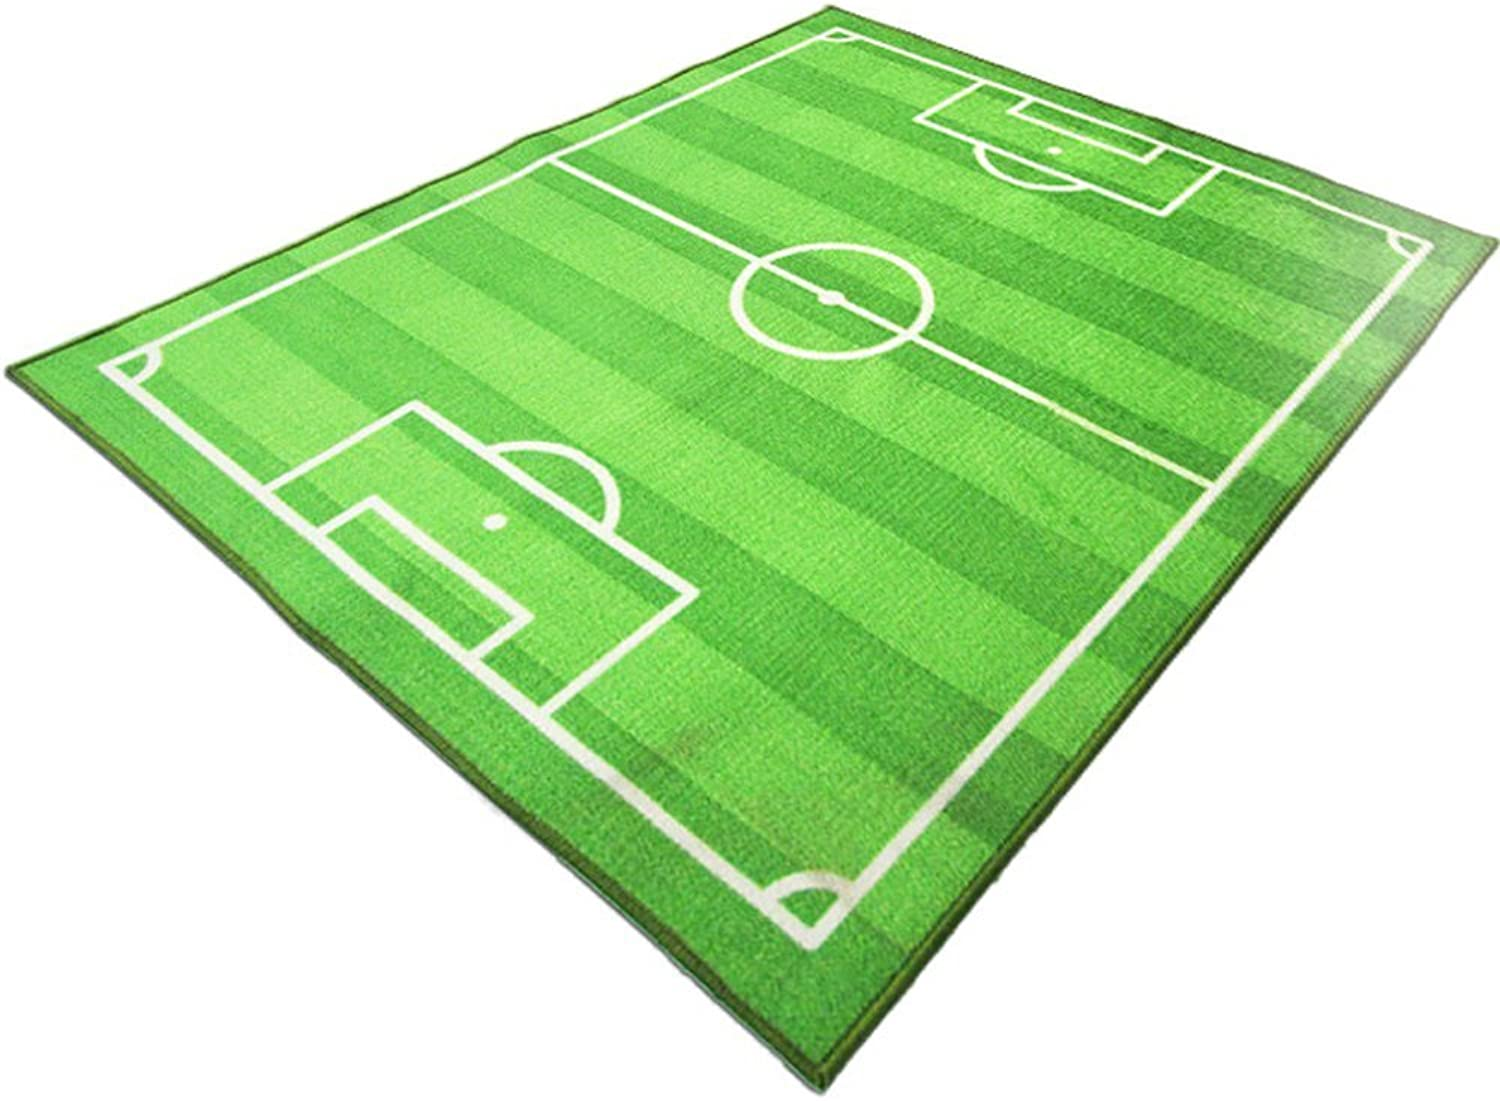 HUAHOO FUNS Soccer Field Ground Area Rug Sports Rug Playroom Carpet Kids Area Play Rug Green Football Pitch Rug (100x130cm(39''x51''))